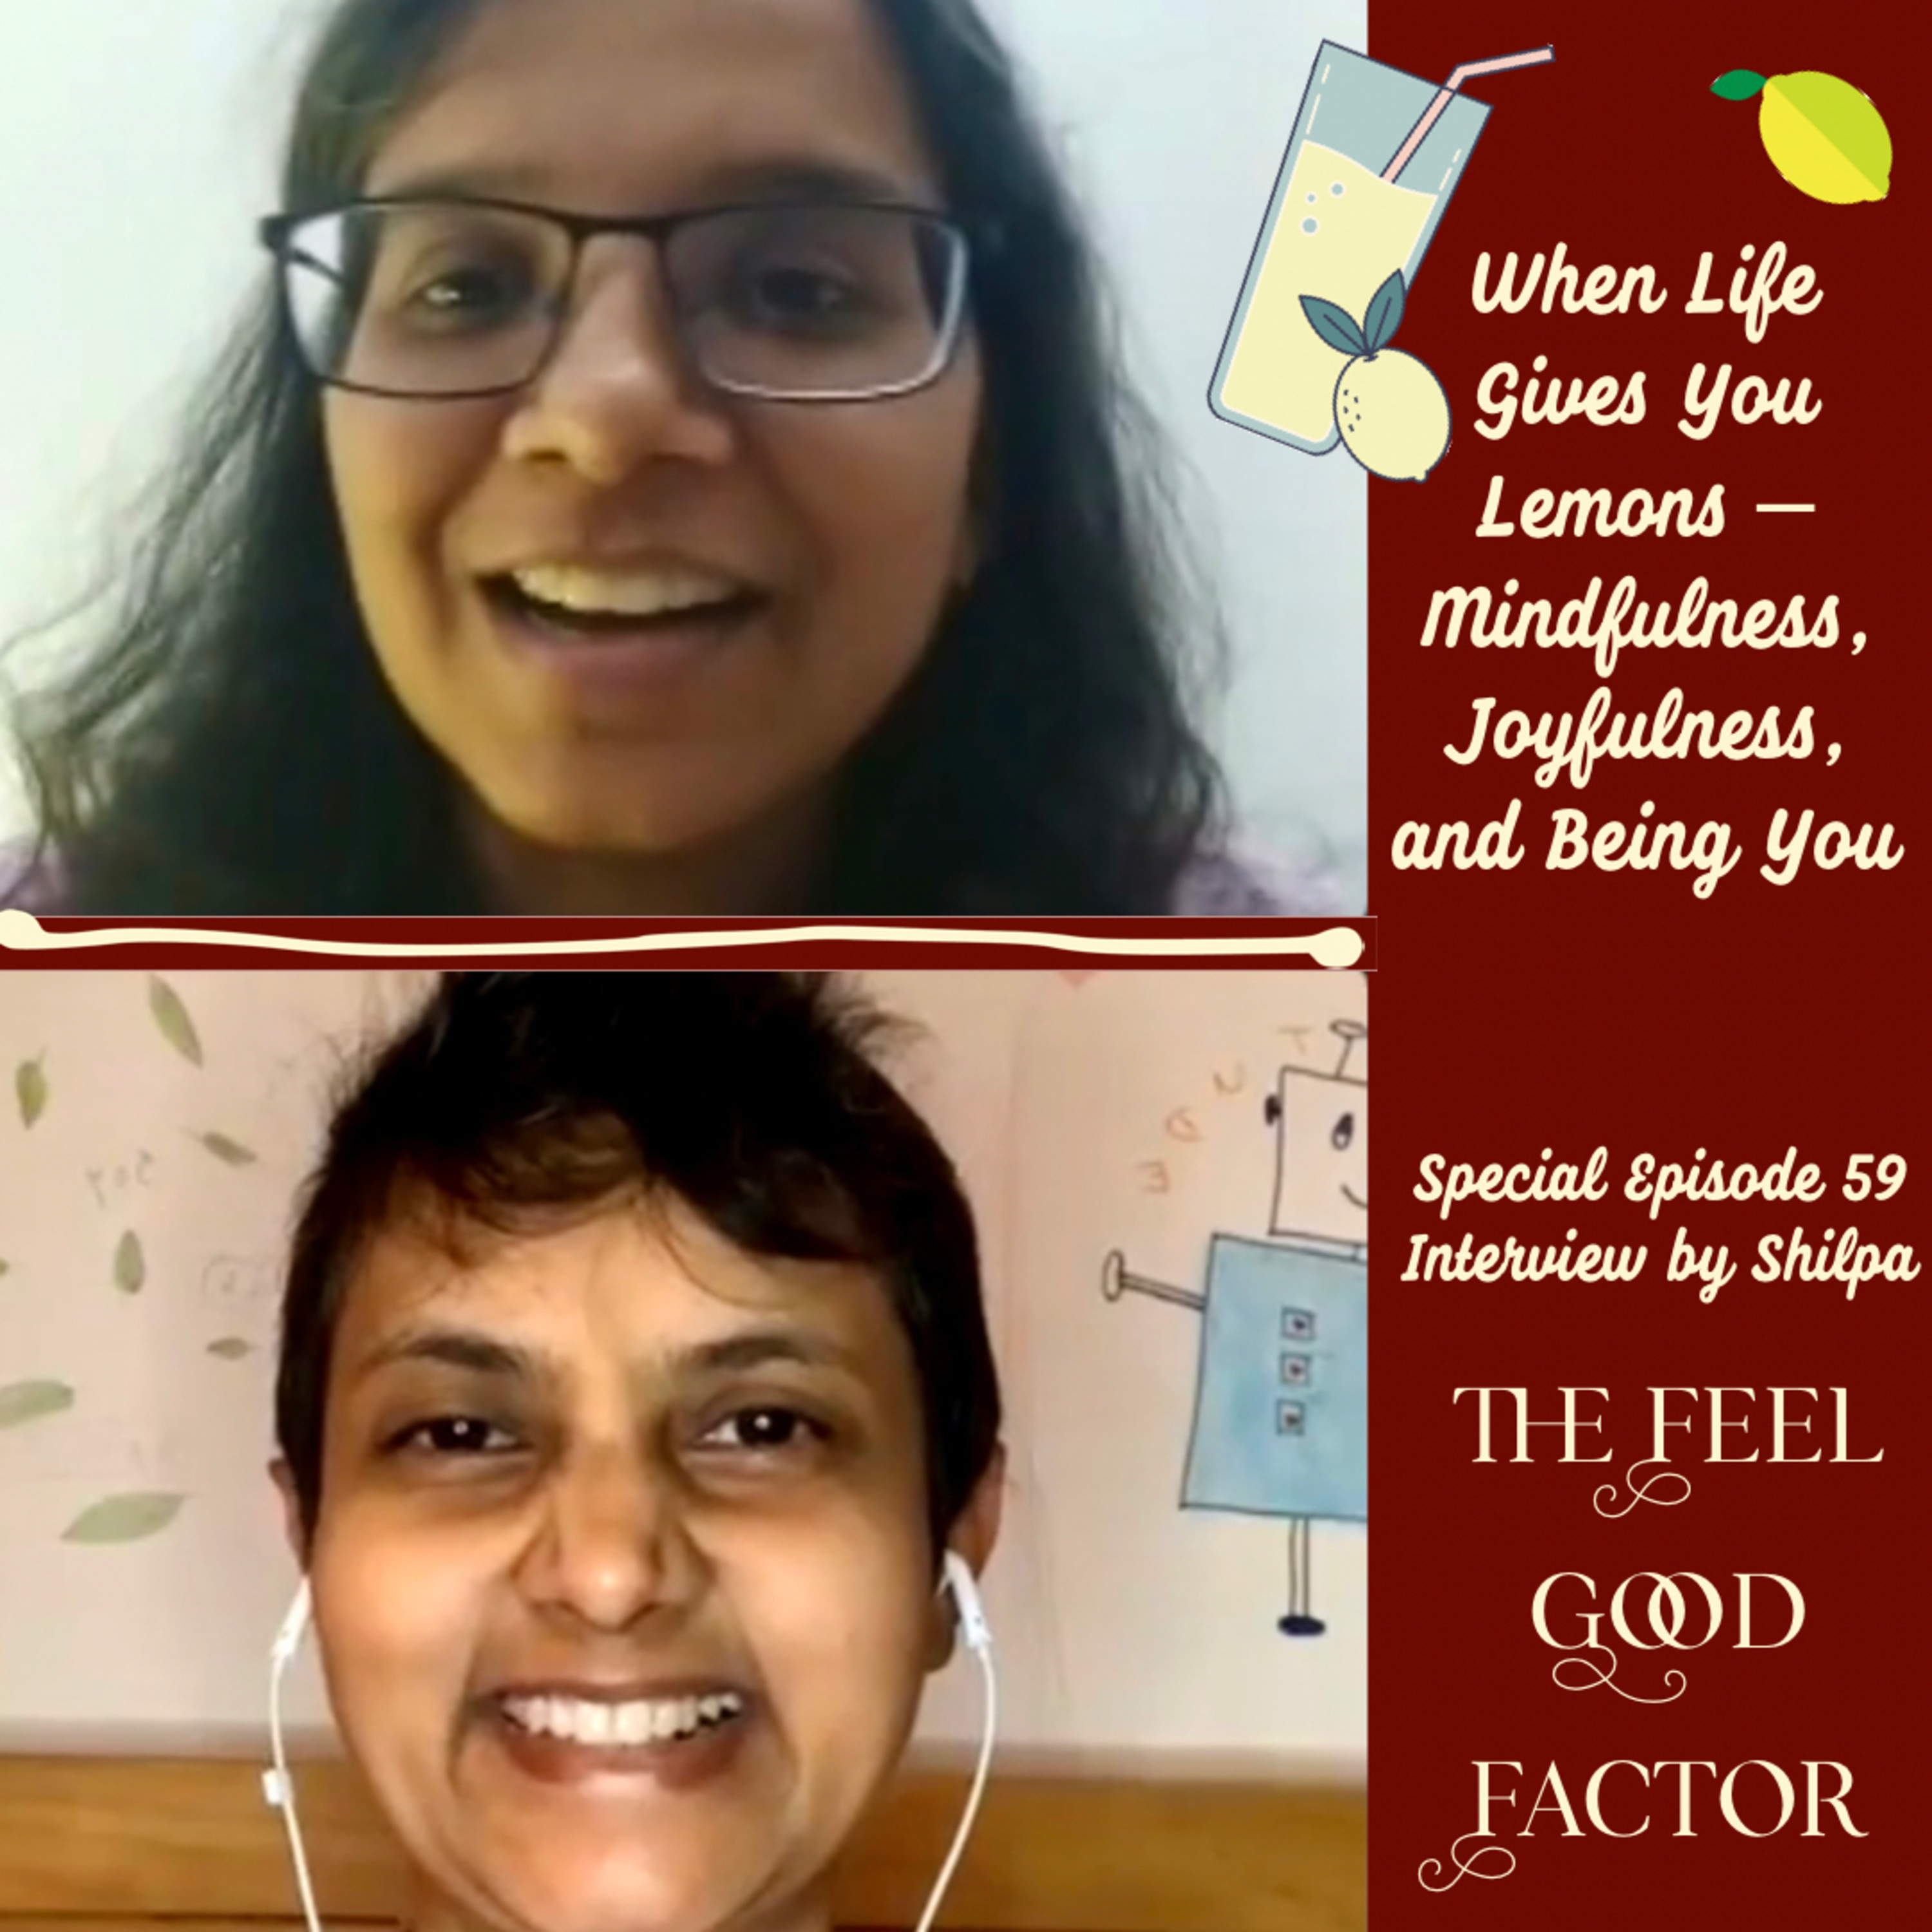 59: When Life Gives You Lemons – Mindfulness, Joyfulness and Being You